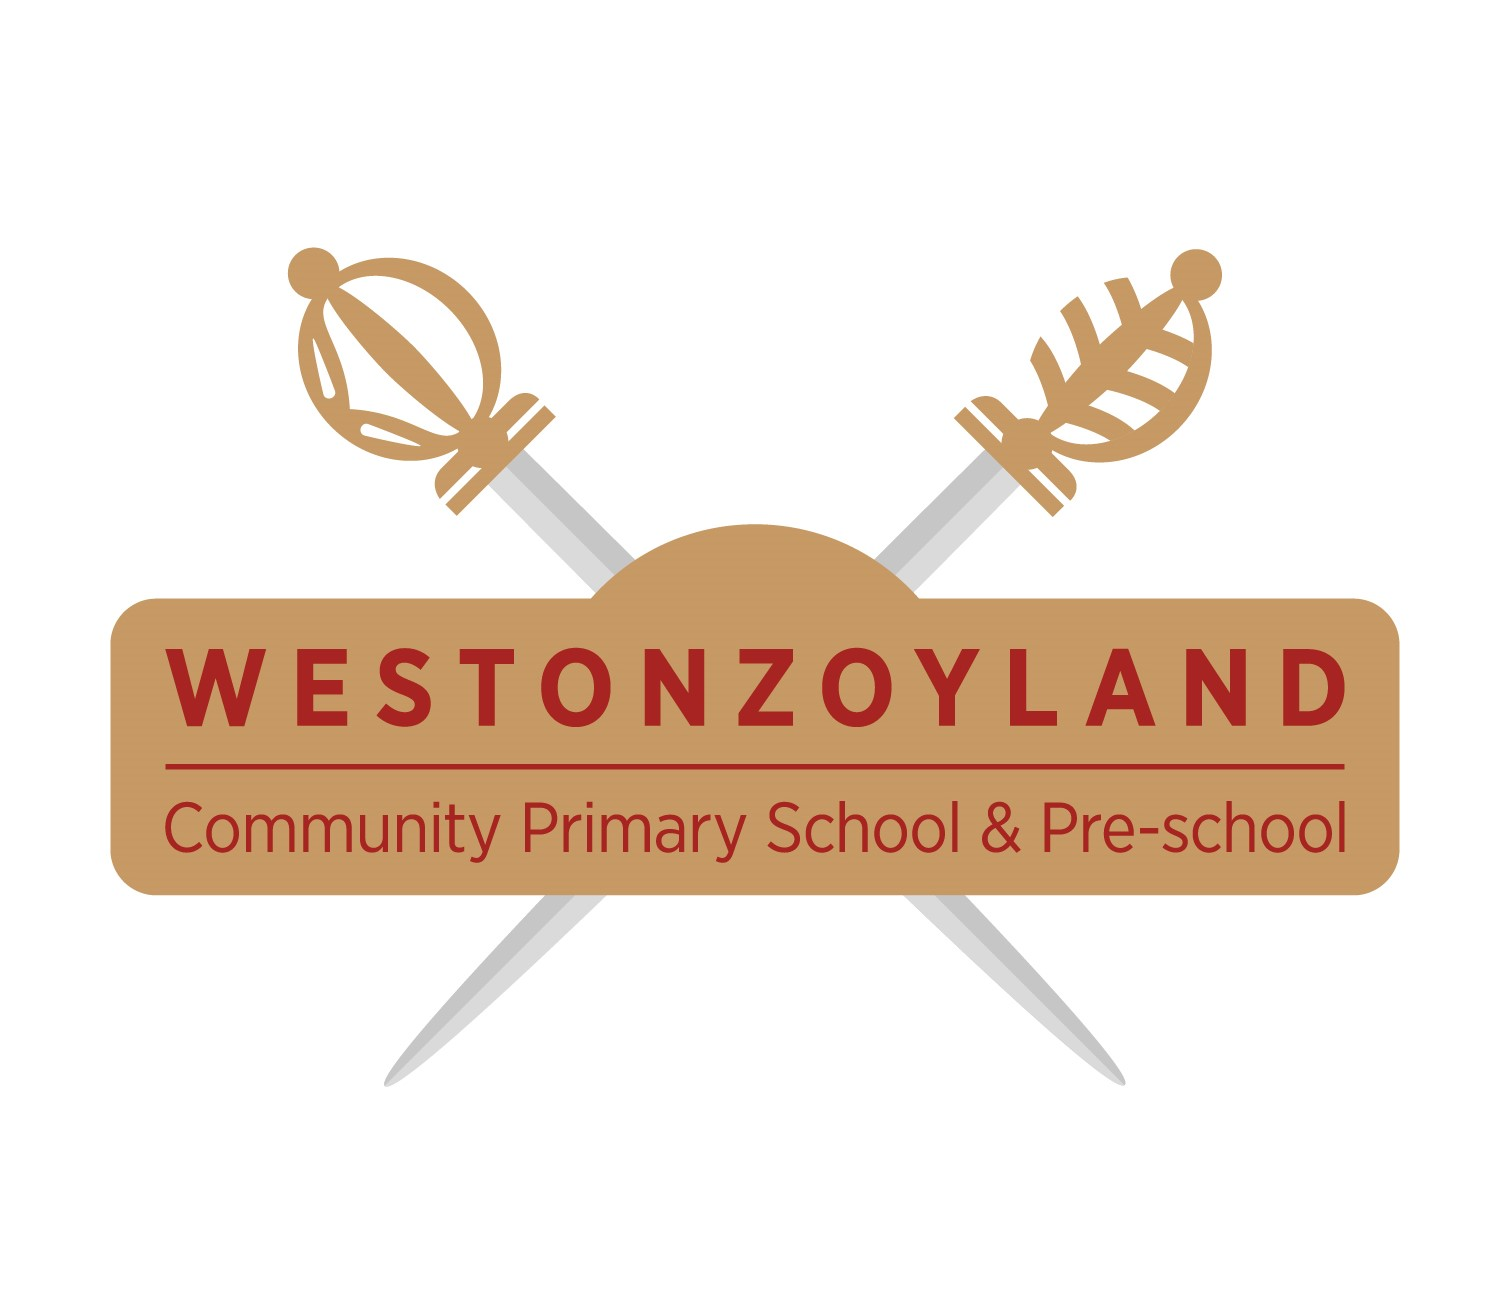 Westonzoyland Community Primary School